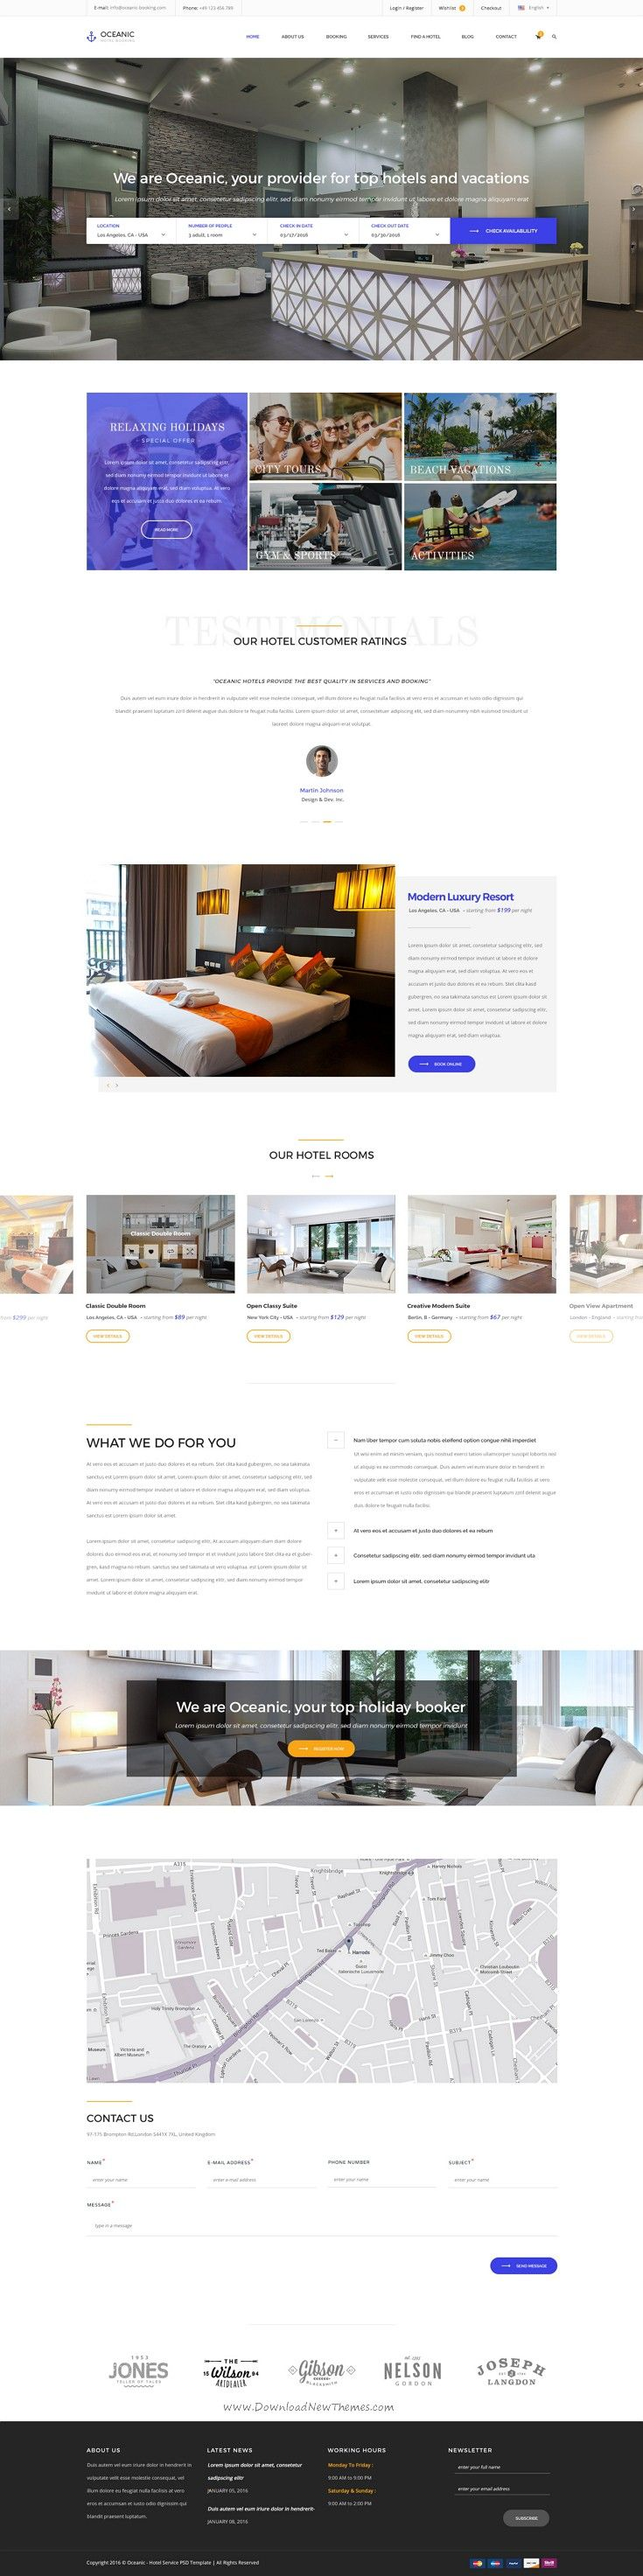 best 25 hotel booking websites ideas on pinterest travel design free drawing websites and free competitions